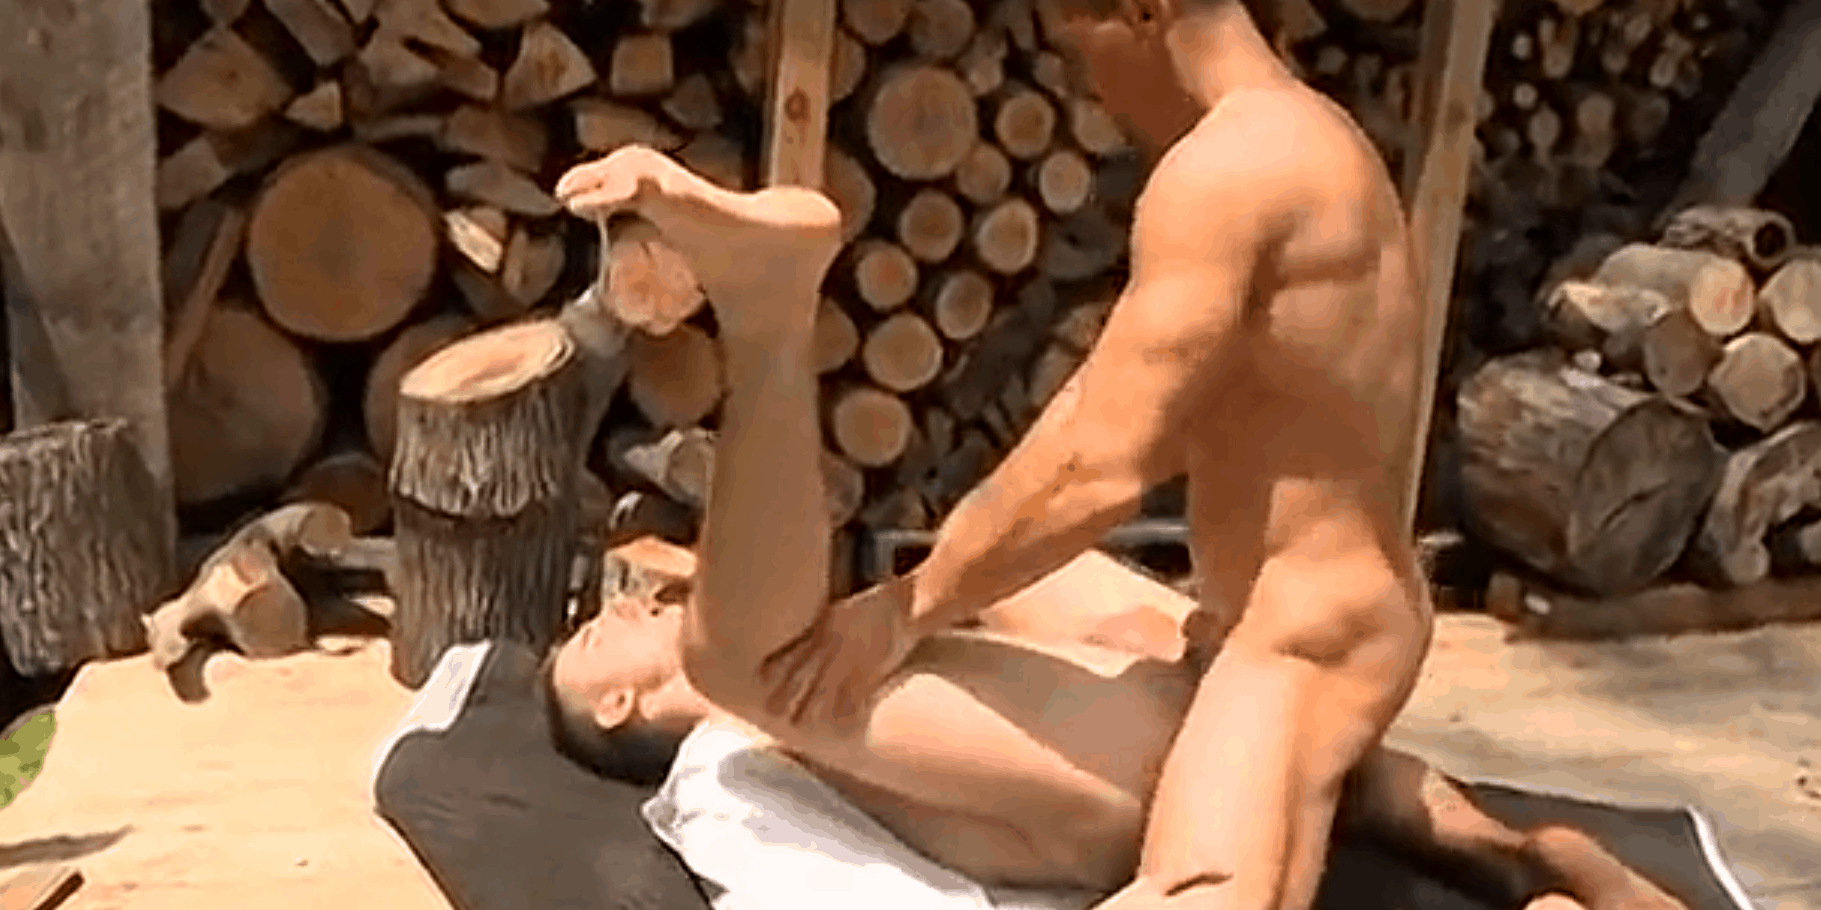 Two friends fuck in the cabin woods in nature